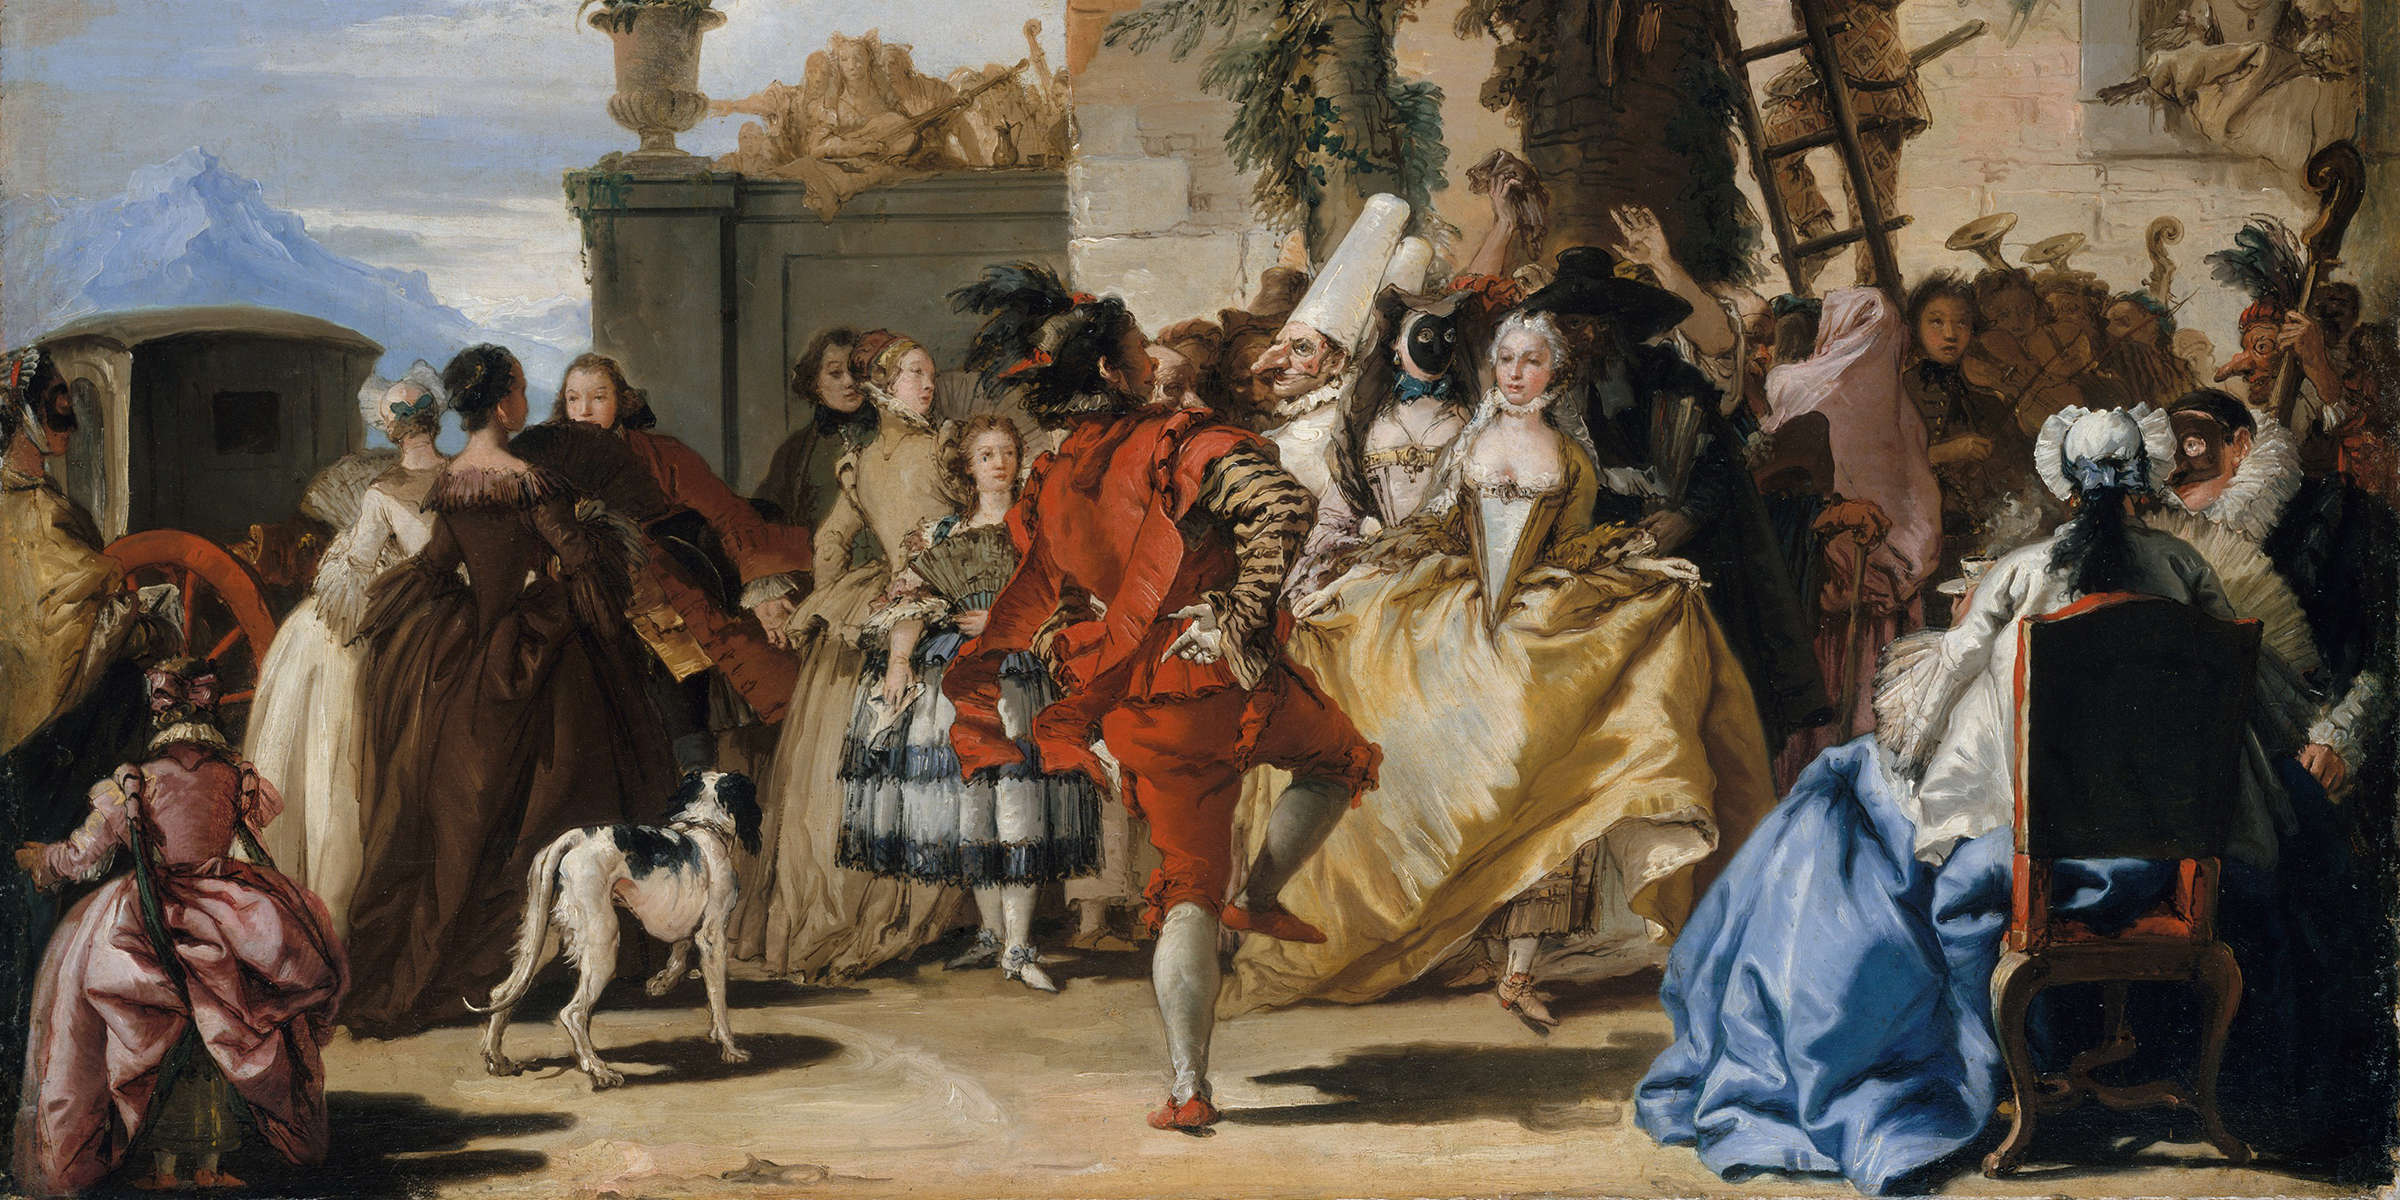 A Dance in the Country, by Giovanni Domenico Tiepolo, c. 1755.